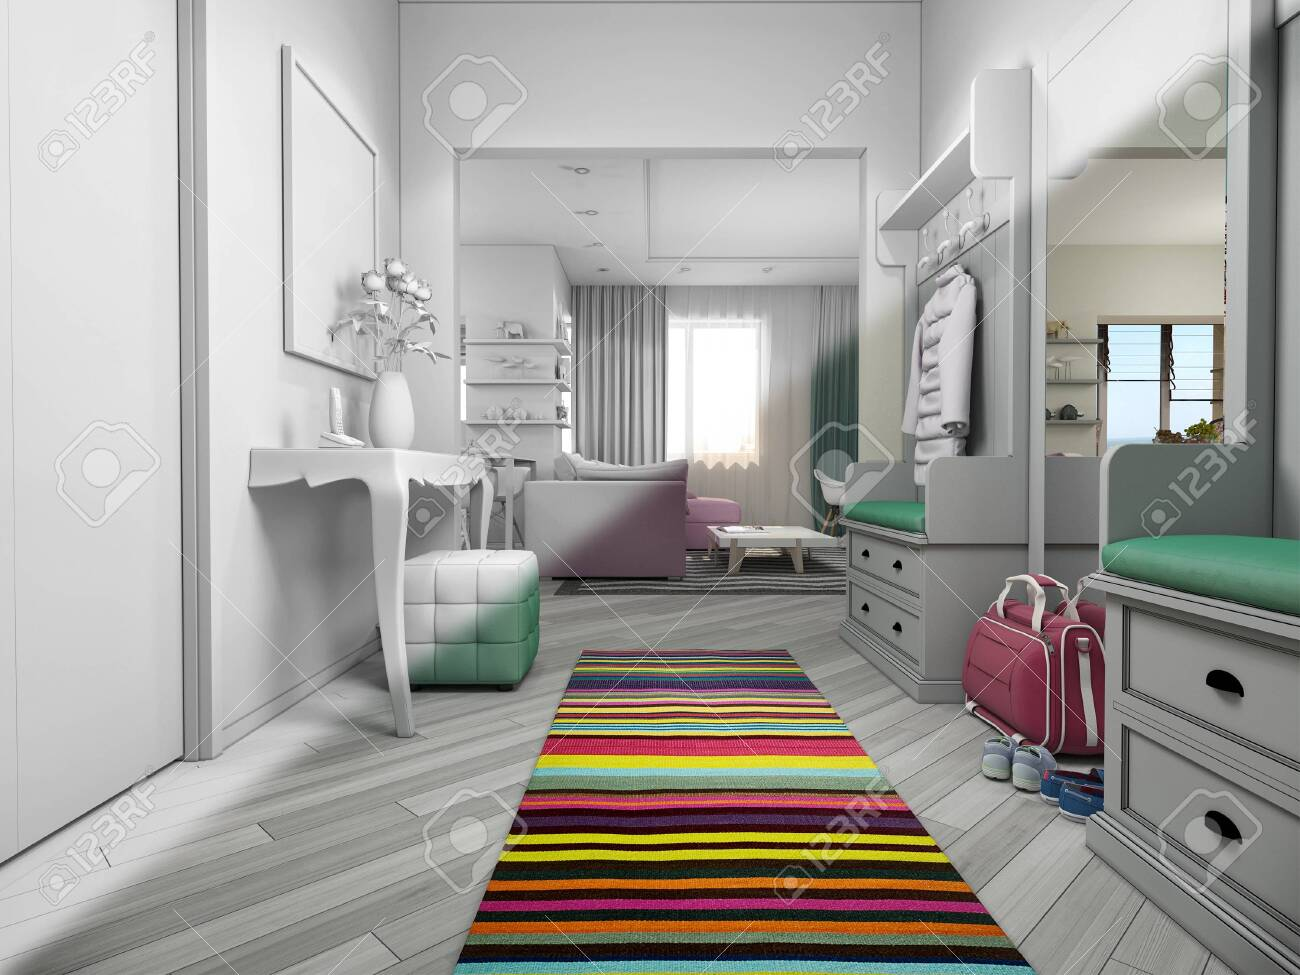 3d Render Of Small Apartments In Pastel Colors Interor Design Stock Photo Picture And Royalty Free Image Image 144311341